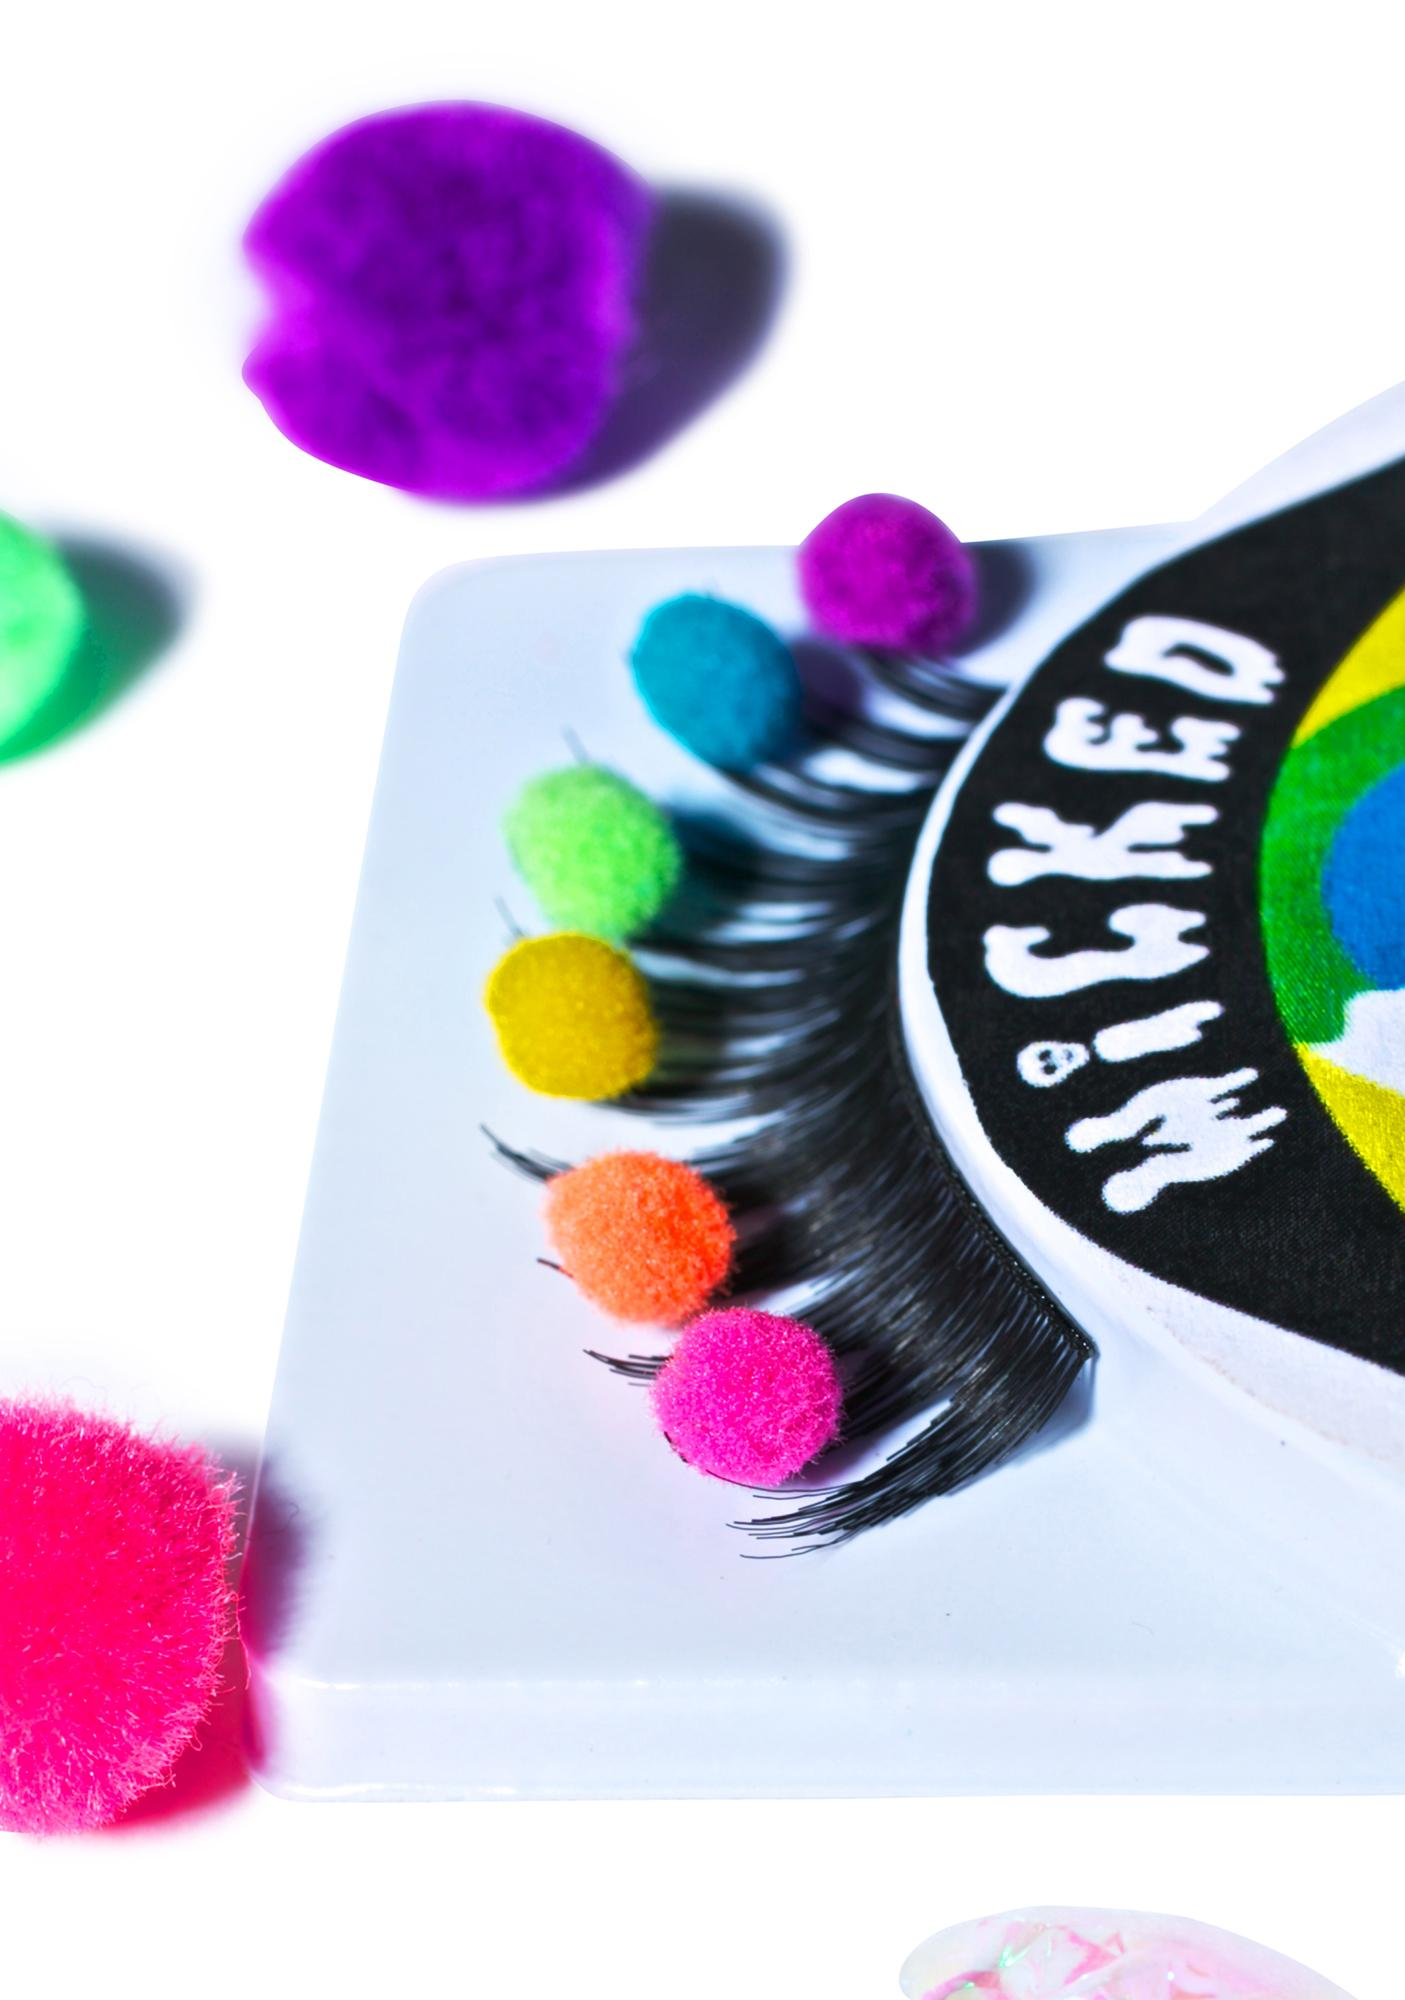 Wicked Hippie Gimme A Pom Pom Lashes